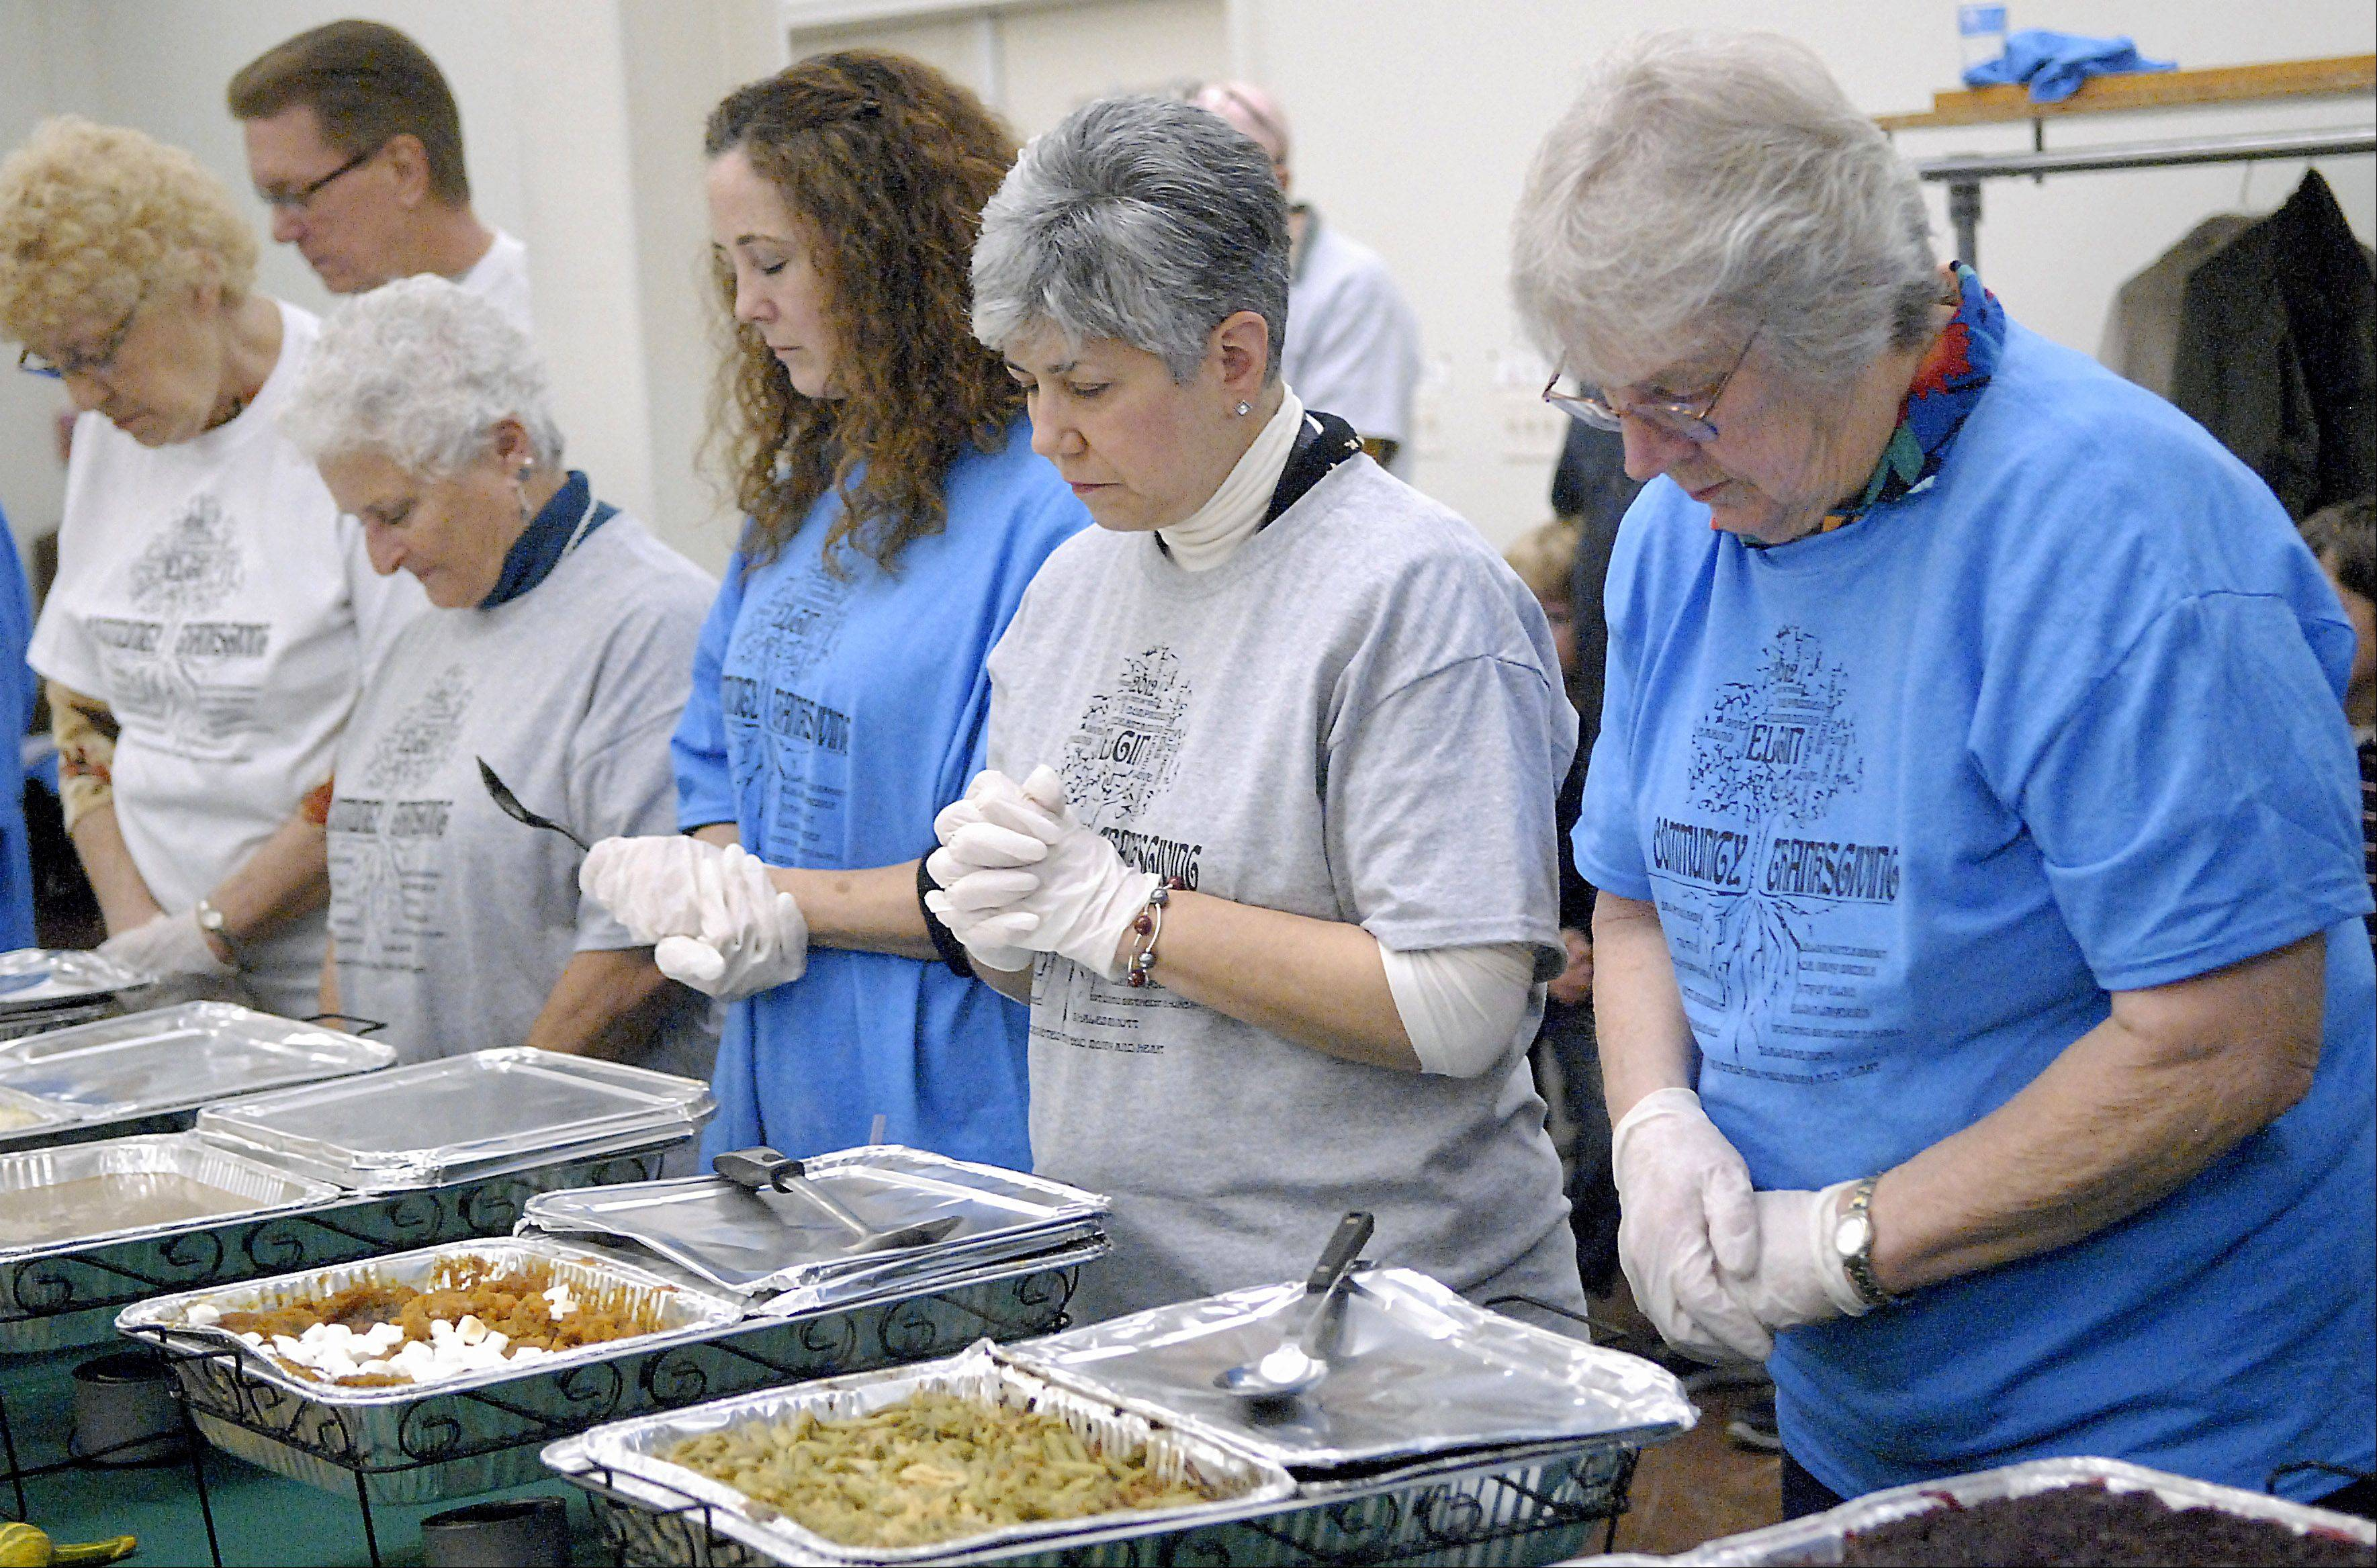 Beth Anderson of Streamwood, third from left, Carol Johnson and Marlene Hensrud, both of Elgin, bow their heads in prayer with fellow volunteers before serving at the fourth annual community dinner in Elgin at the First United Methodist Church. Johnson and Hensrud are residents of the Edgewood active adult community in Elgin, and they brought several volunteers to assist with the meal.